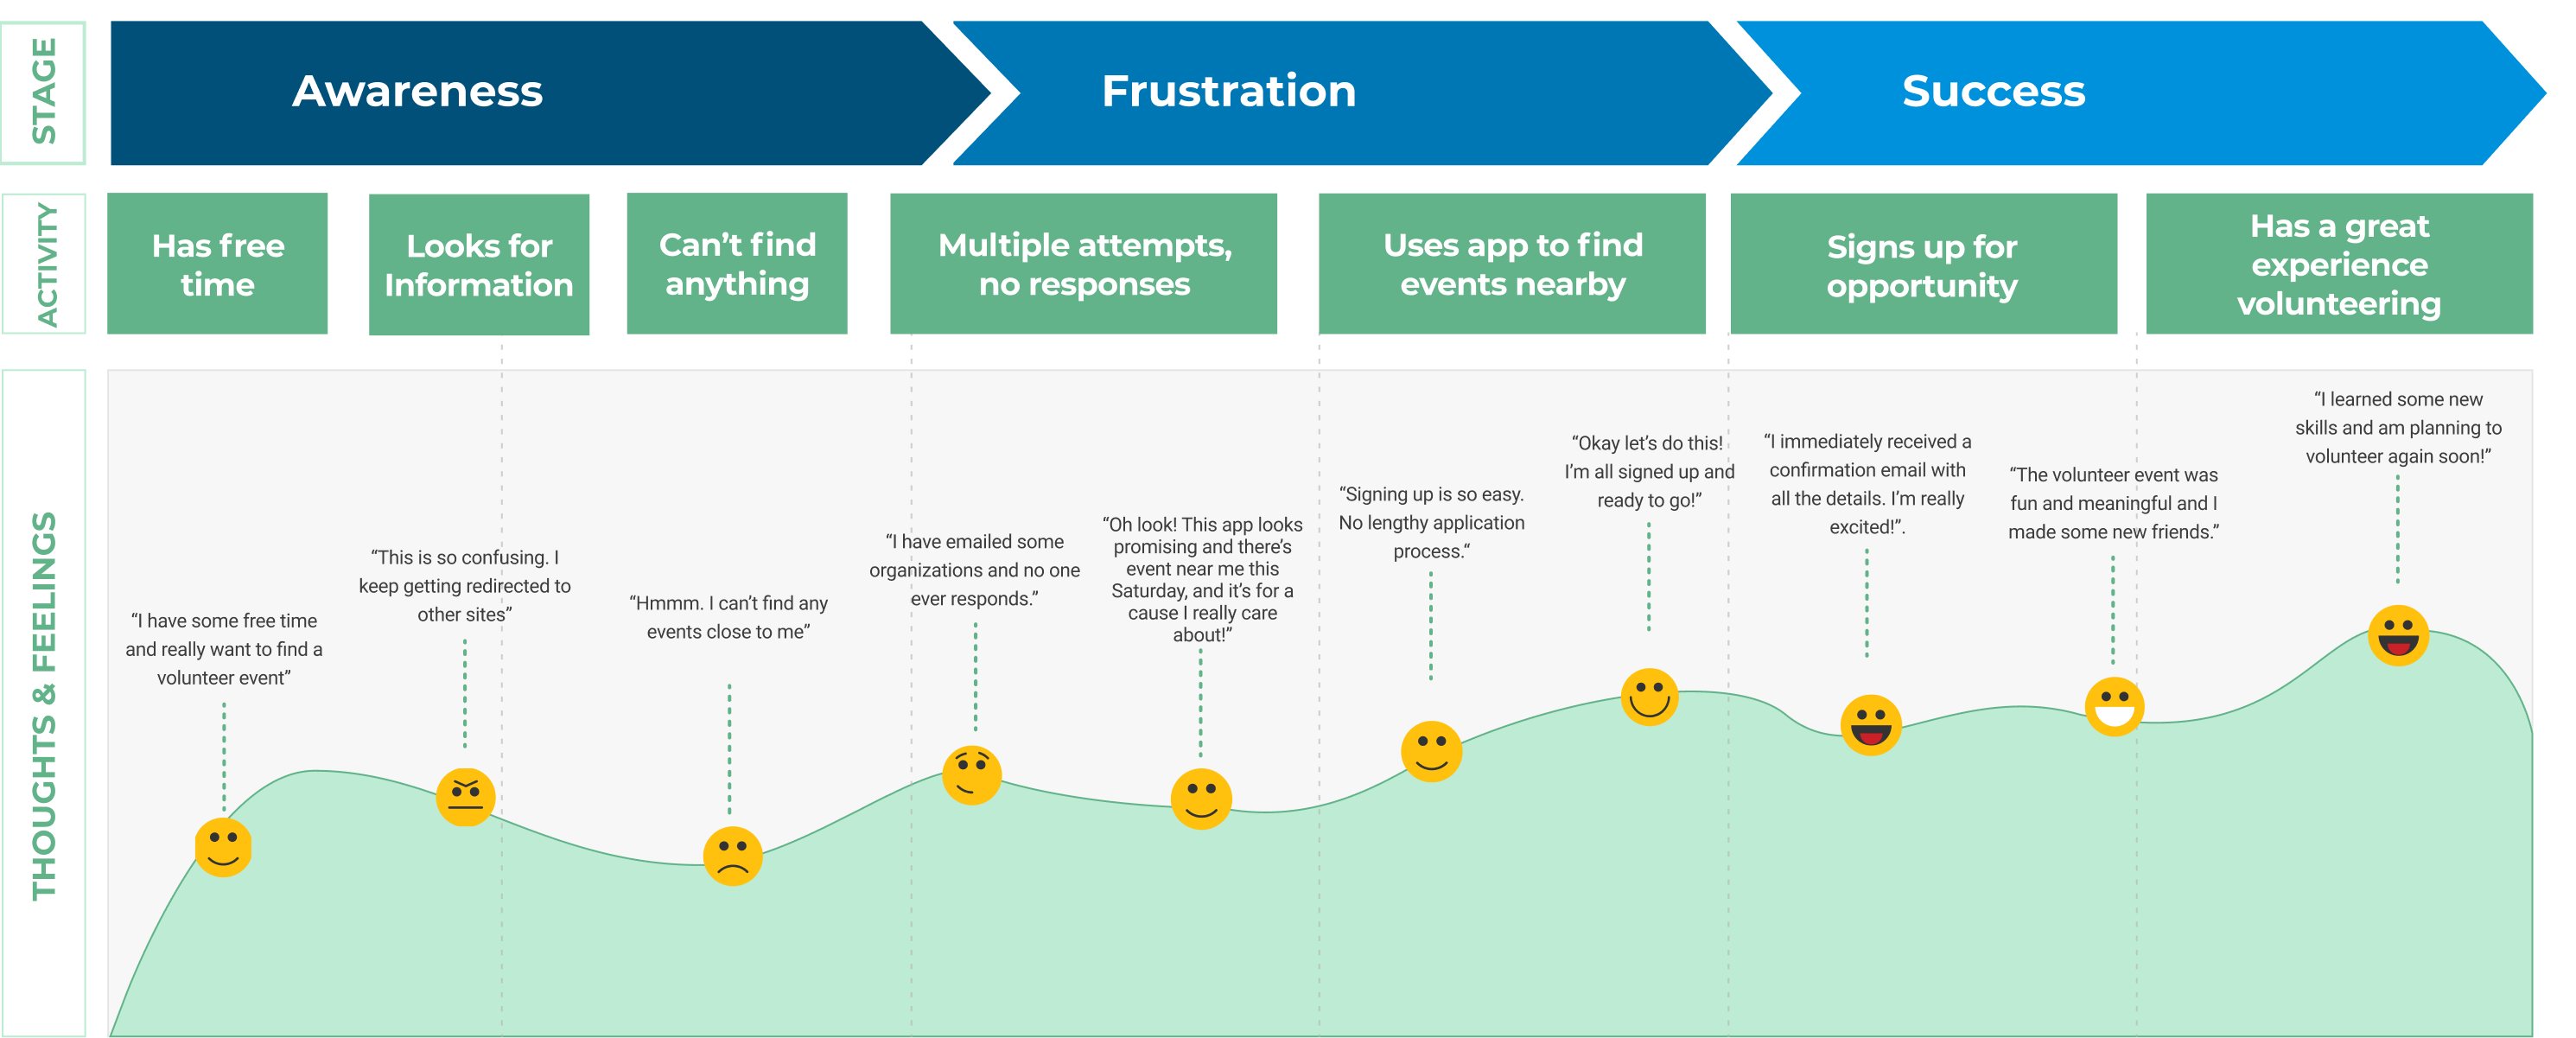 Image of a journey map for WeHelp